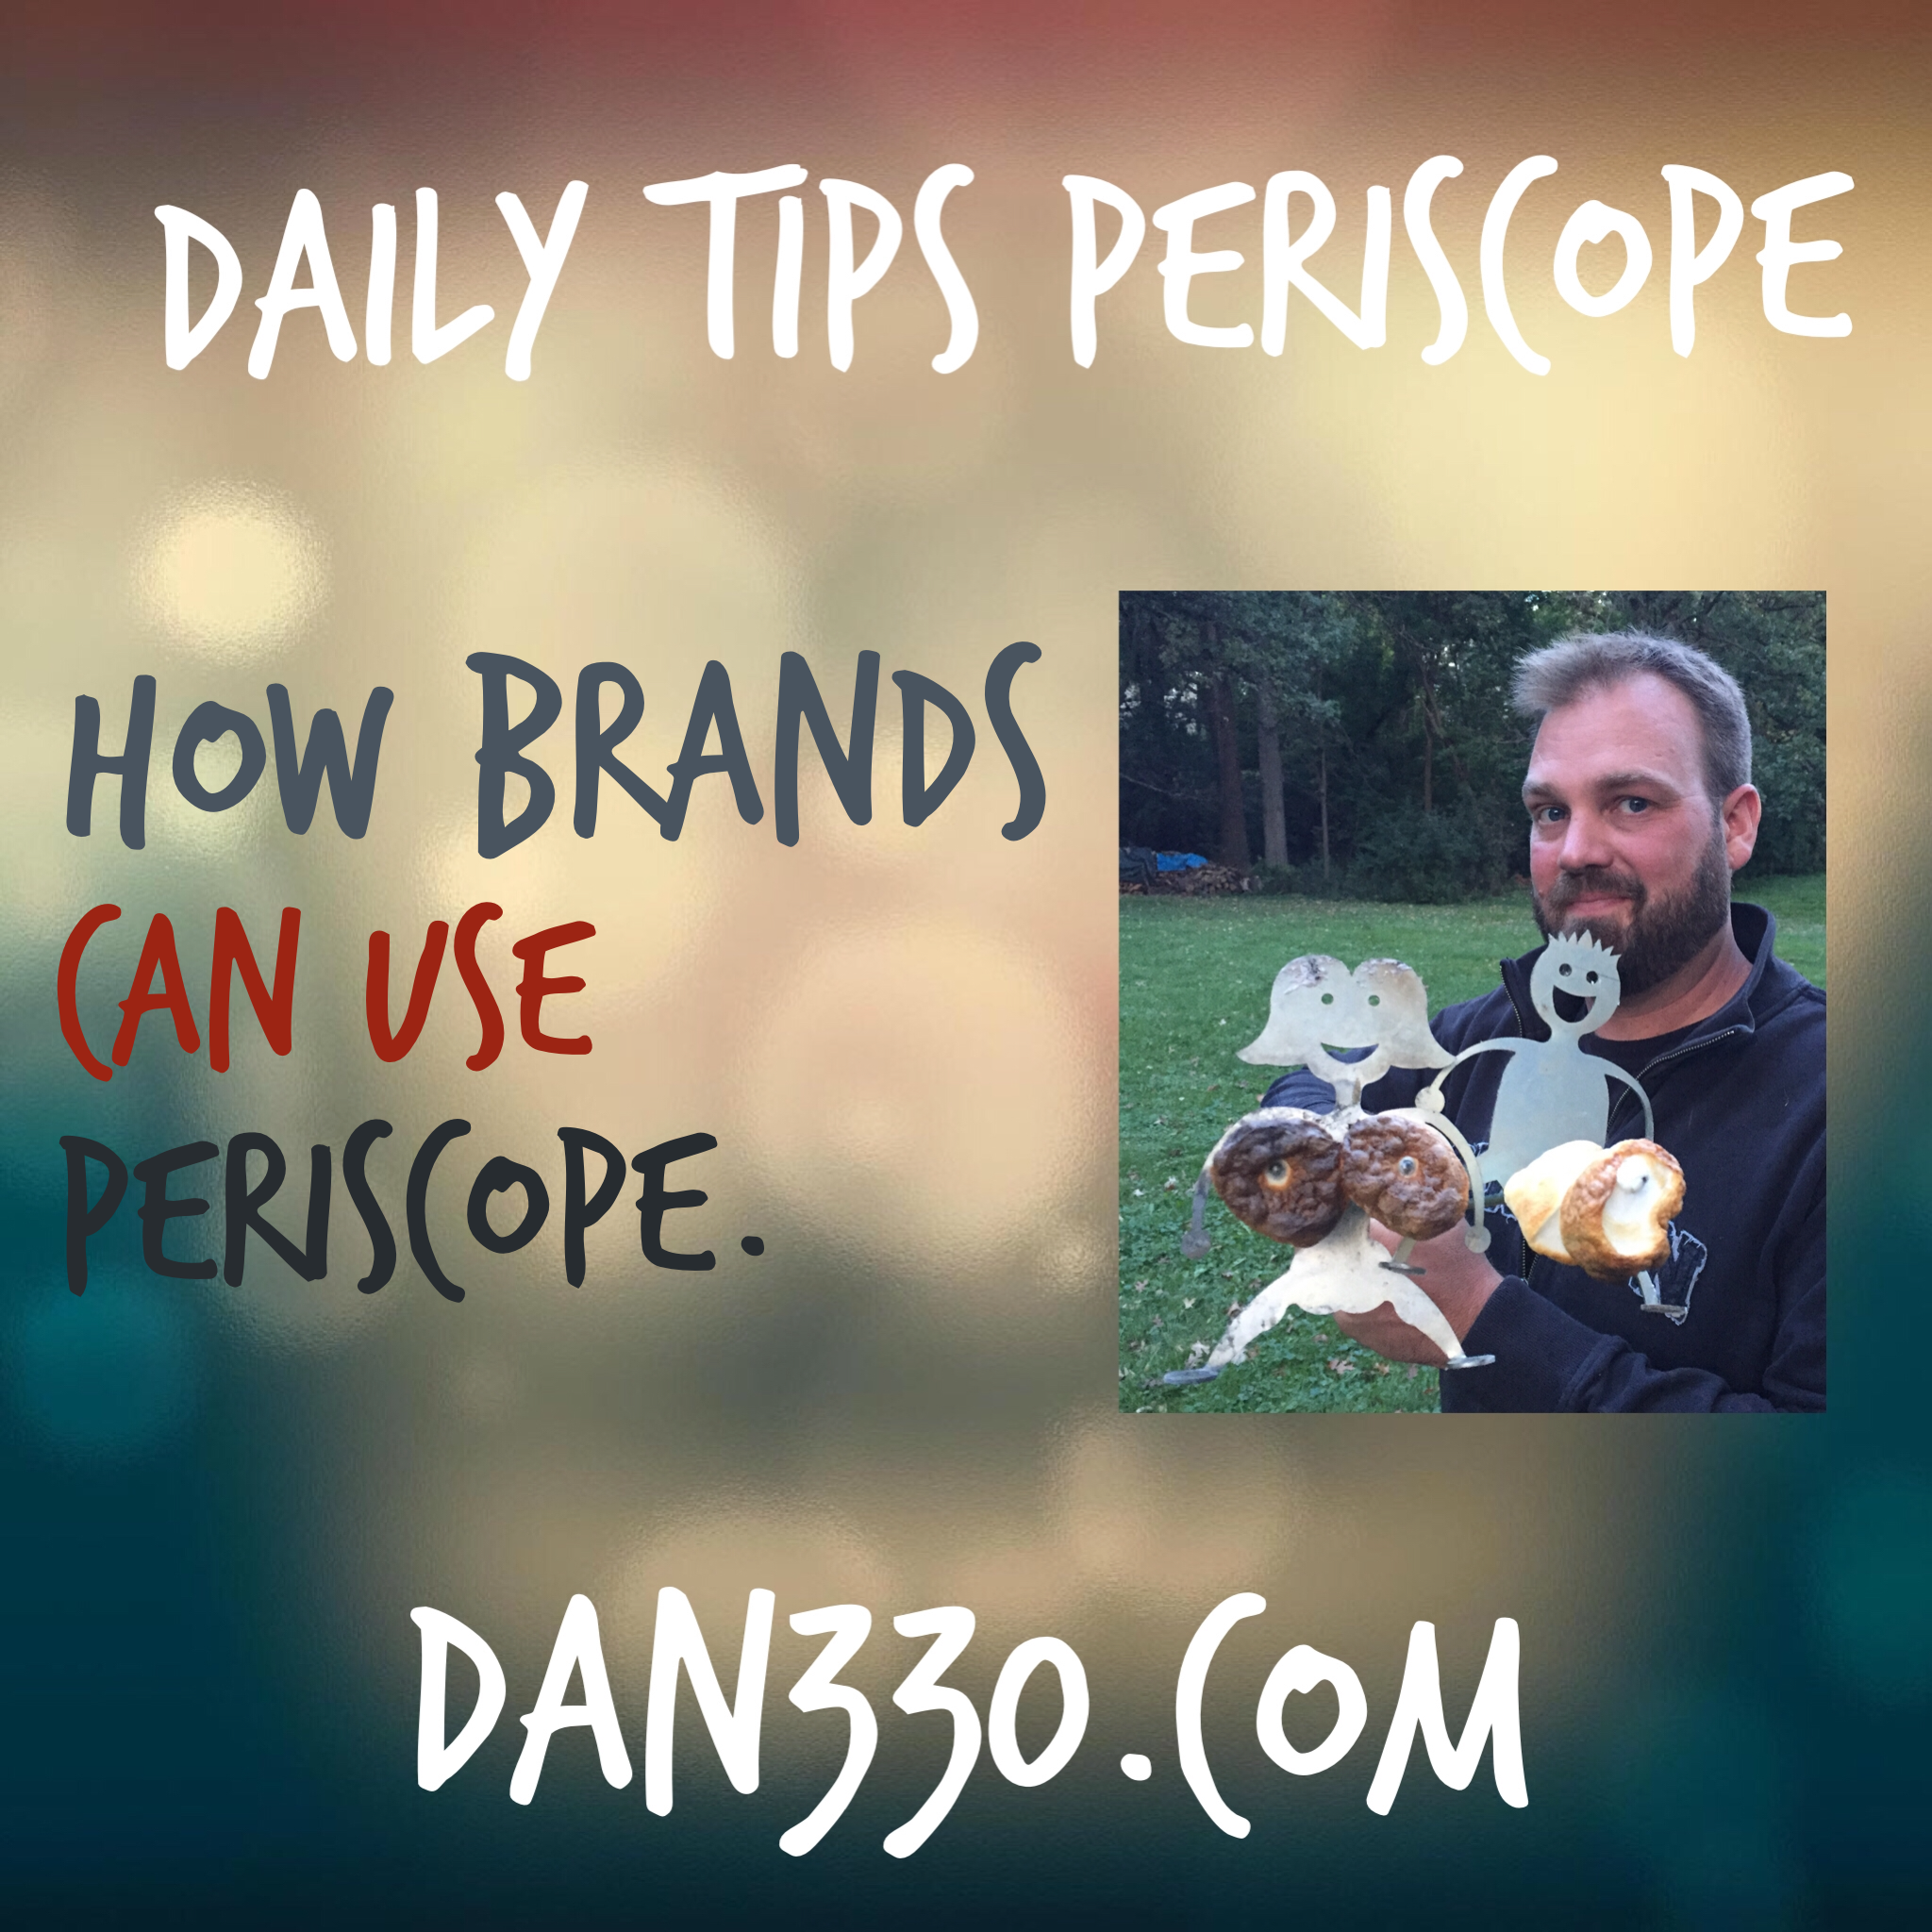 how brands can use periscope